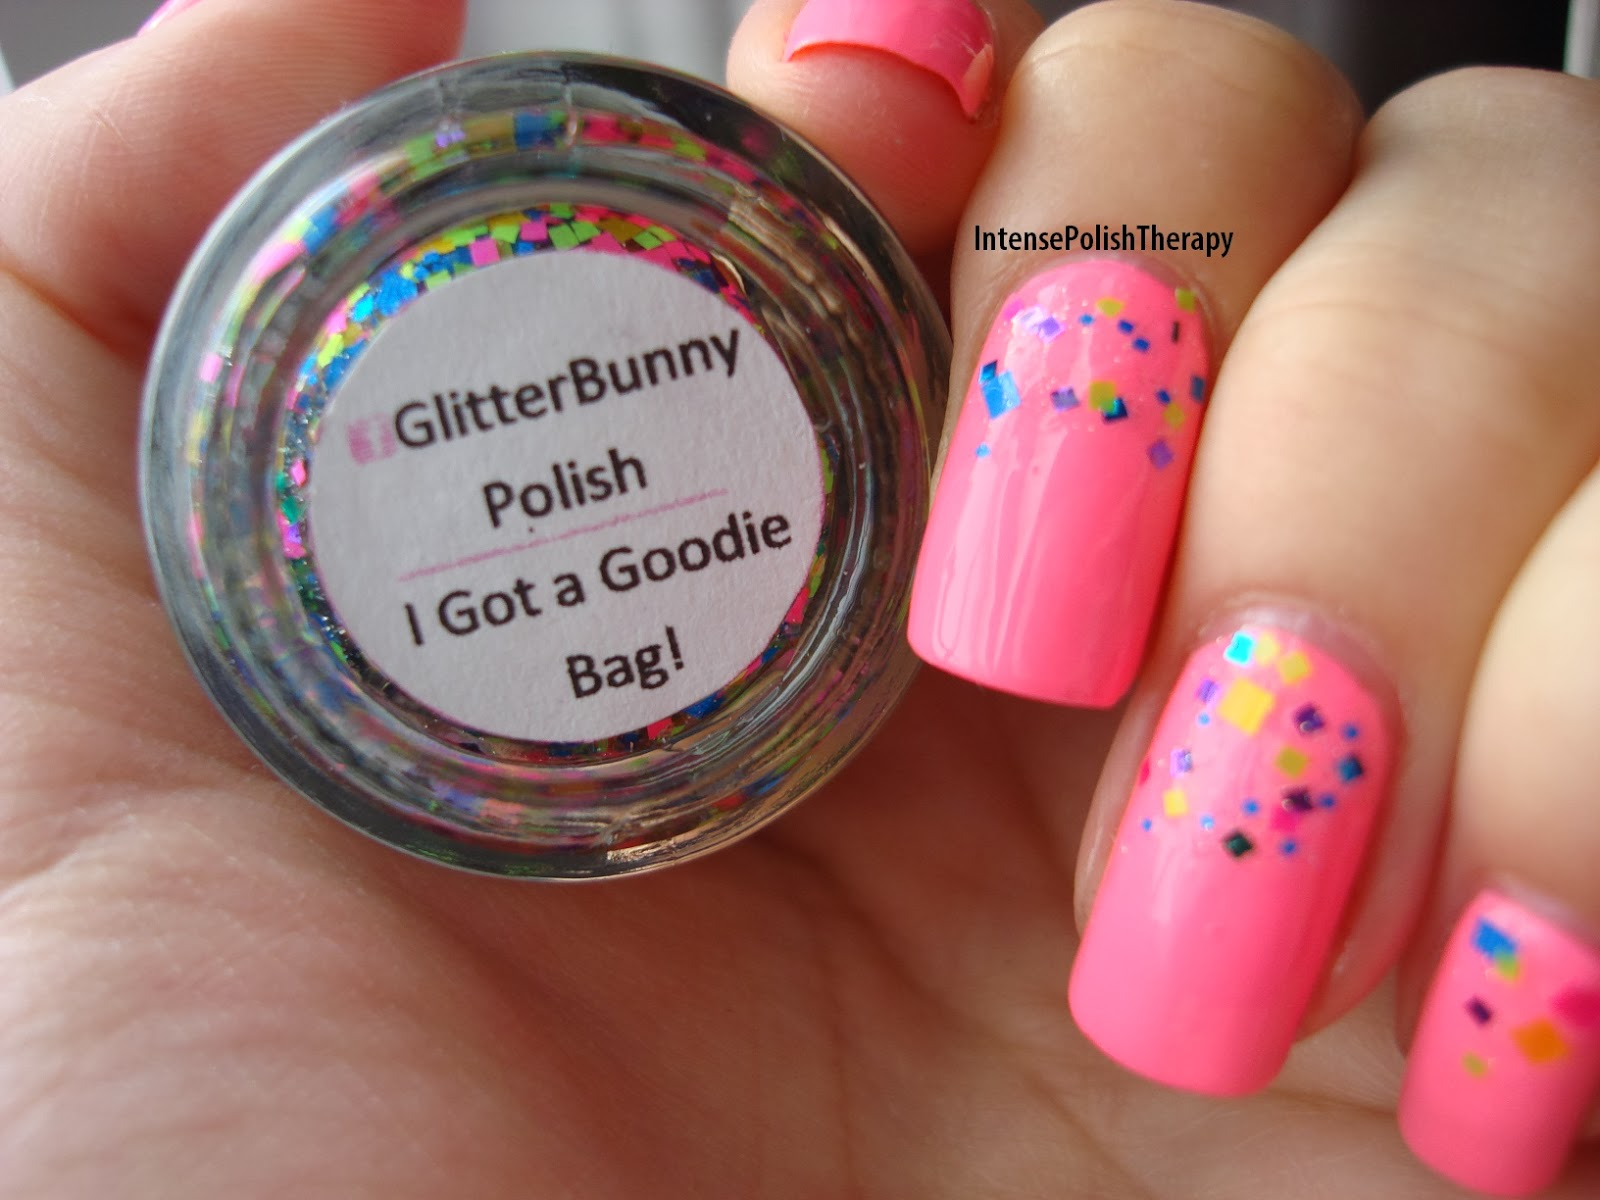 Ceramic Glaze - Tropical Guava & Glitter Bunny - I Got a Goodie Bag